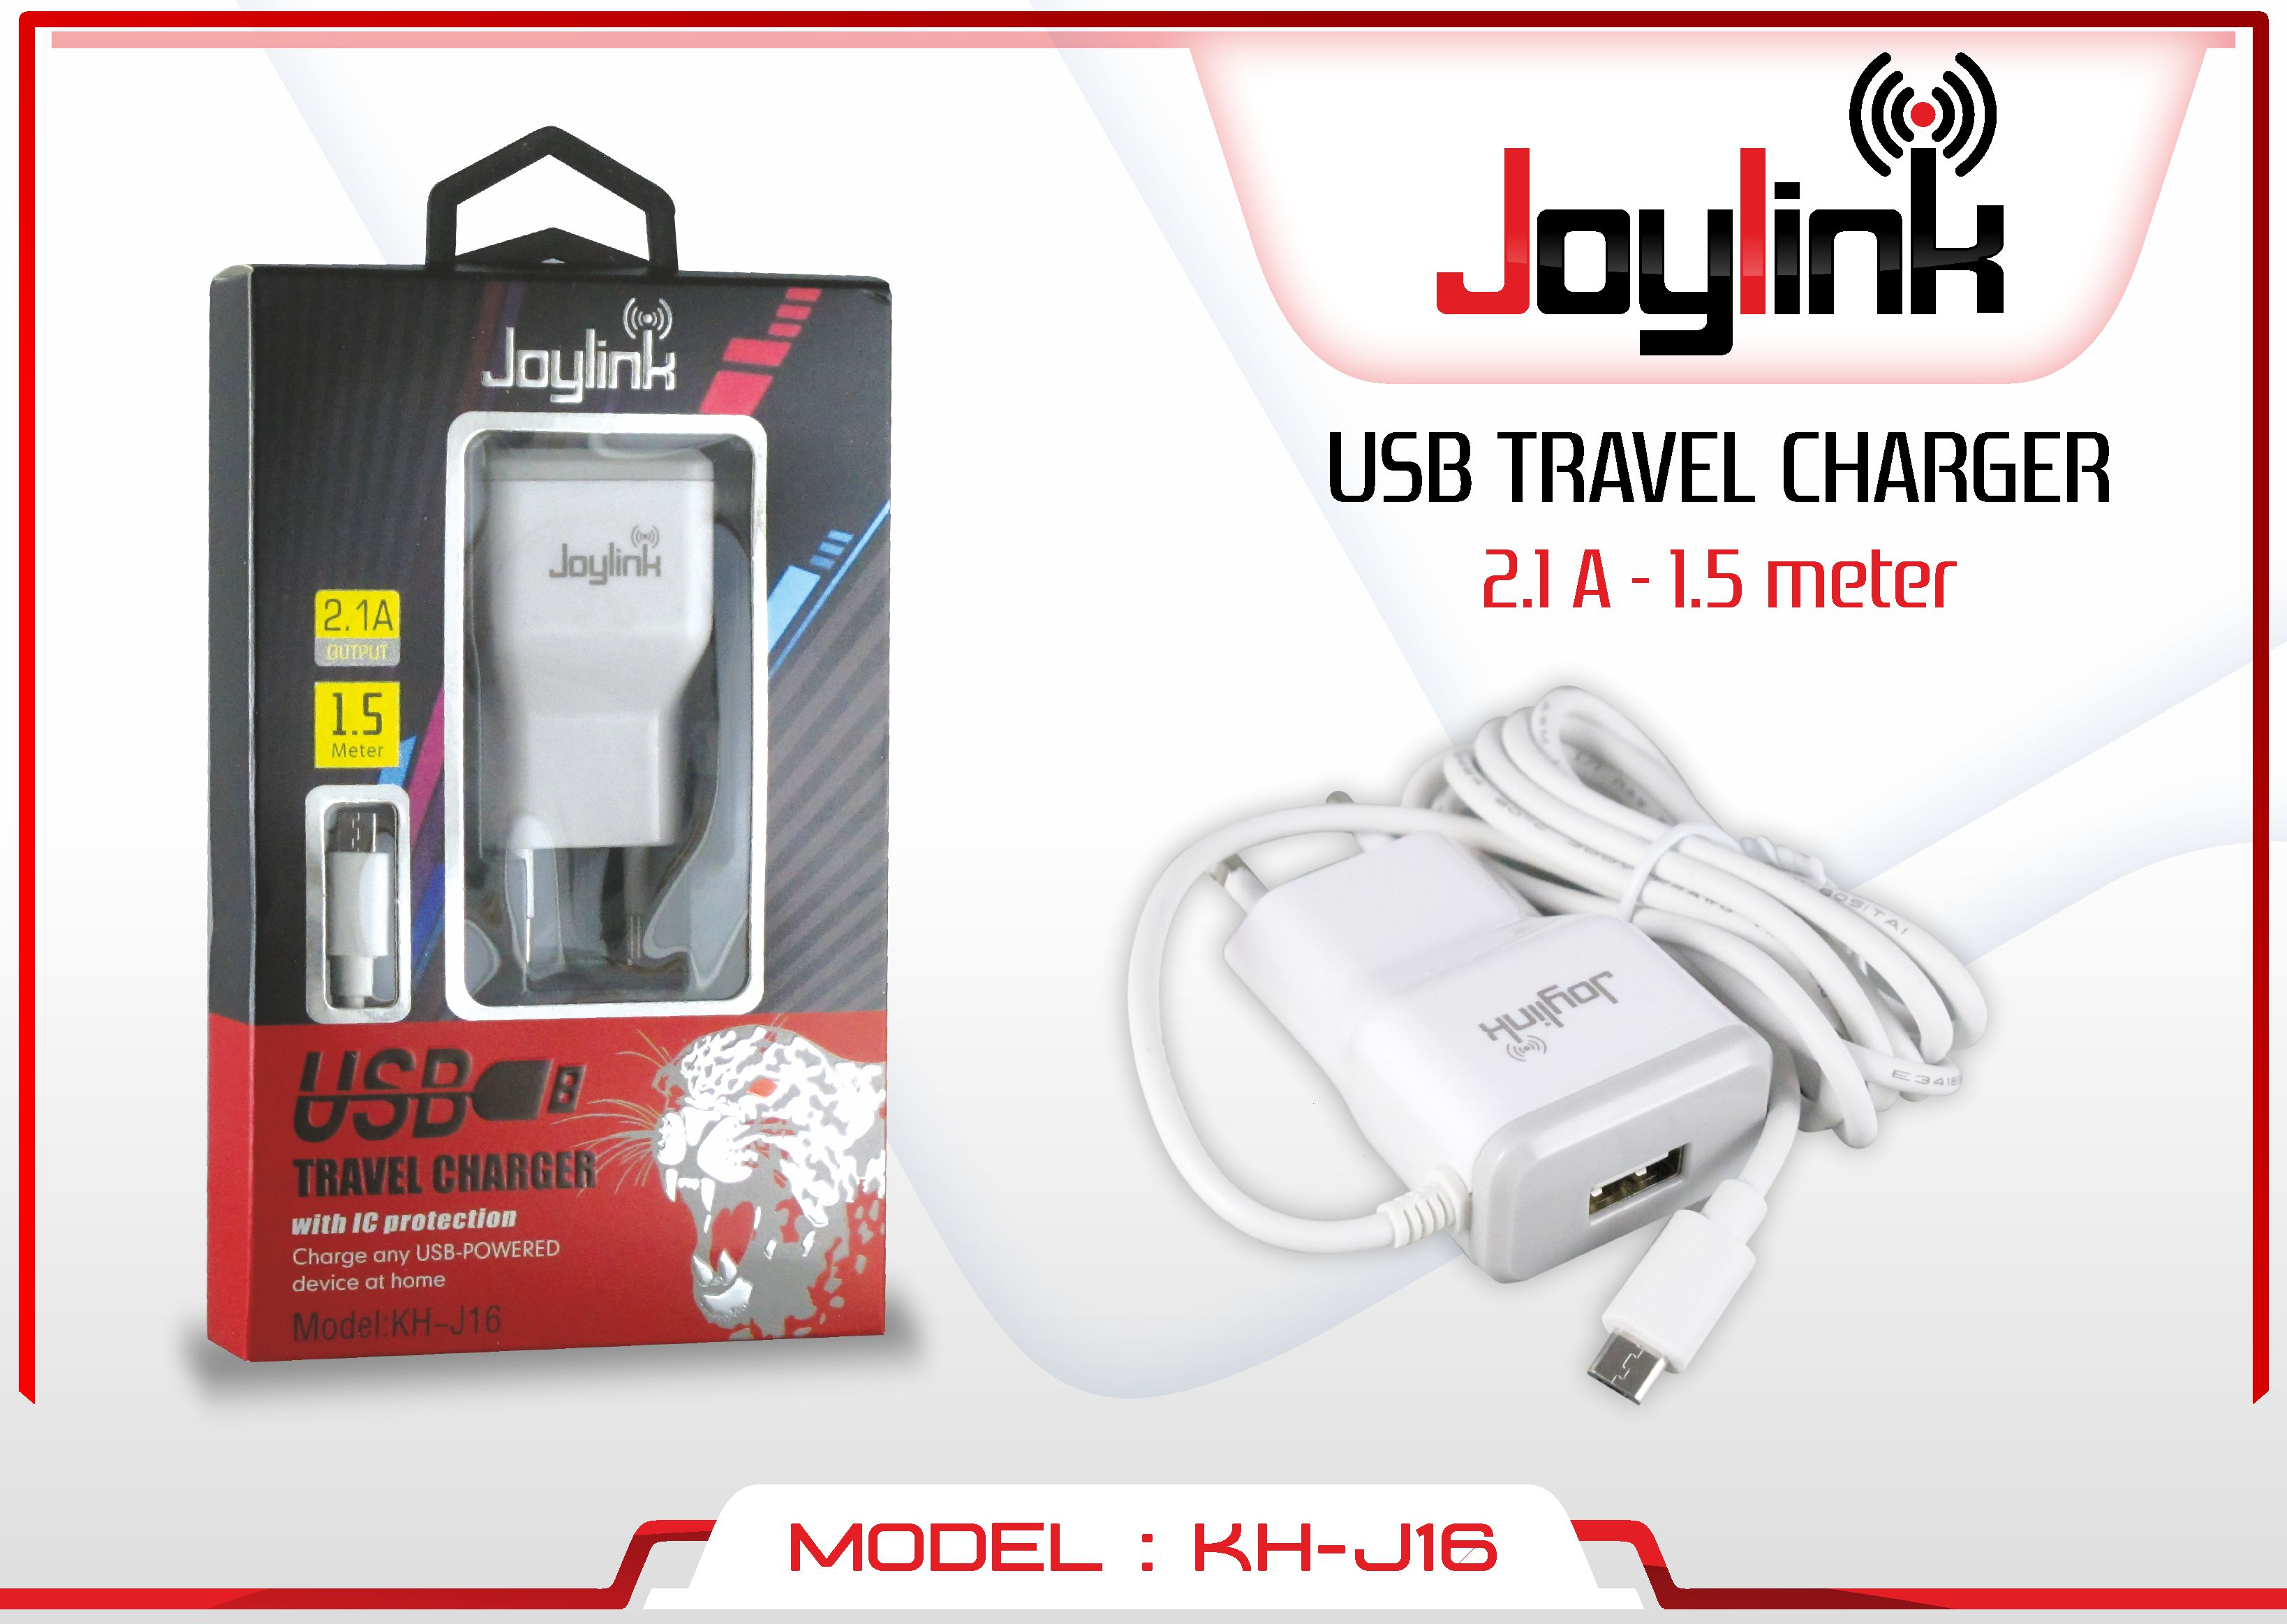 KH-J004 MABKO CHARGER 3.4A